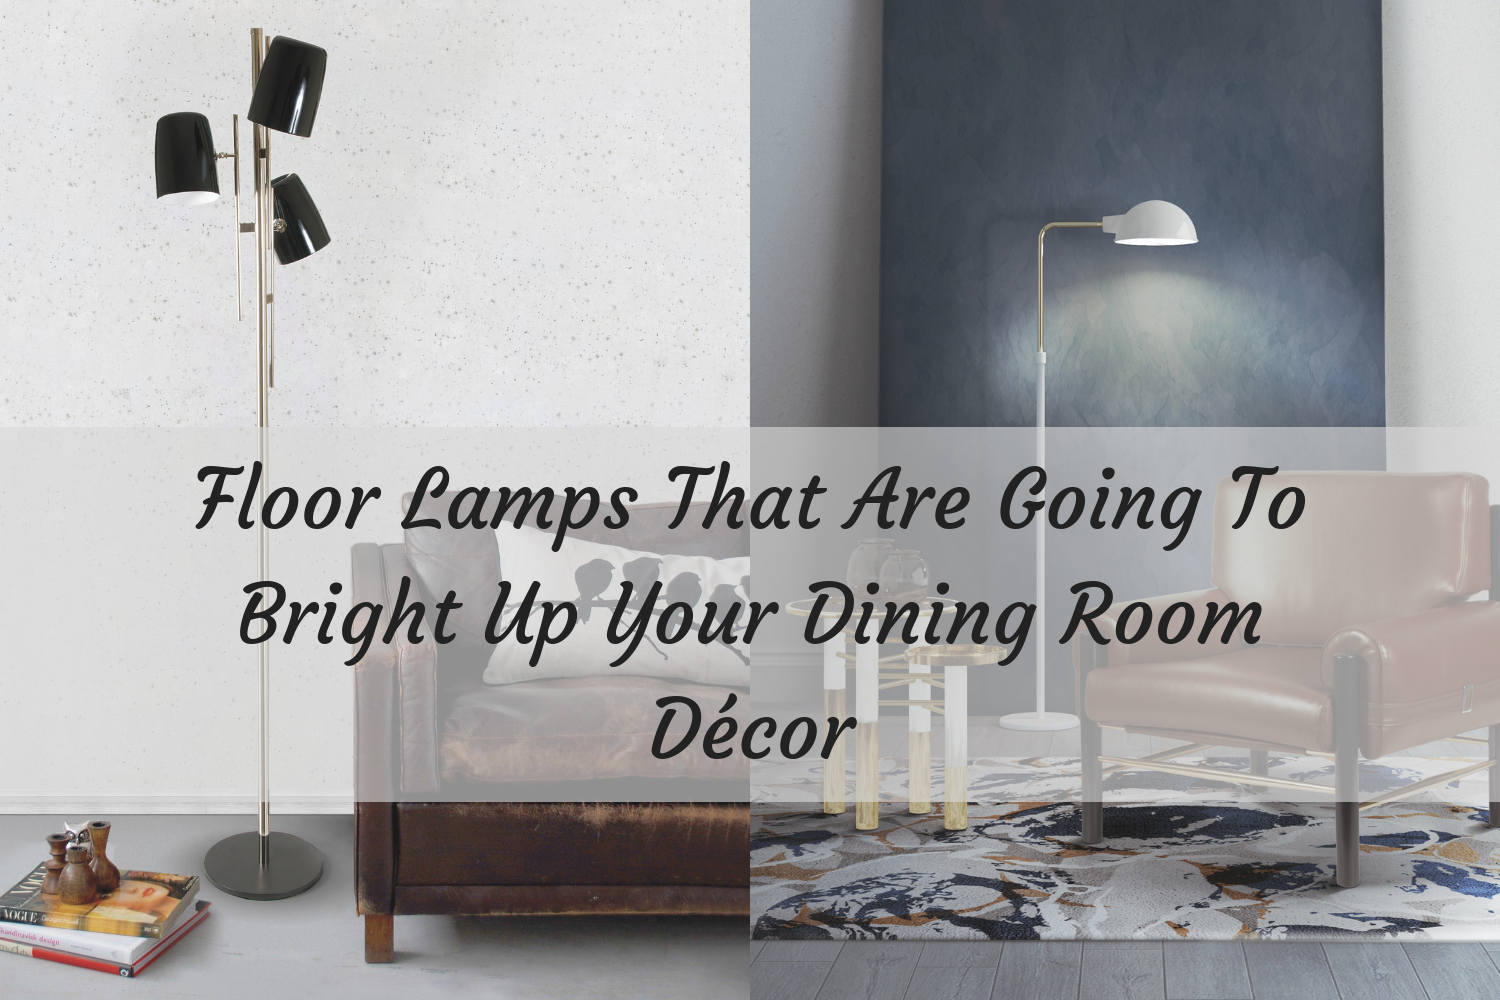 Floor Lamps That Are Going To Bright Up Your Dining Room Décor U2013 Dining Room  Lighting